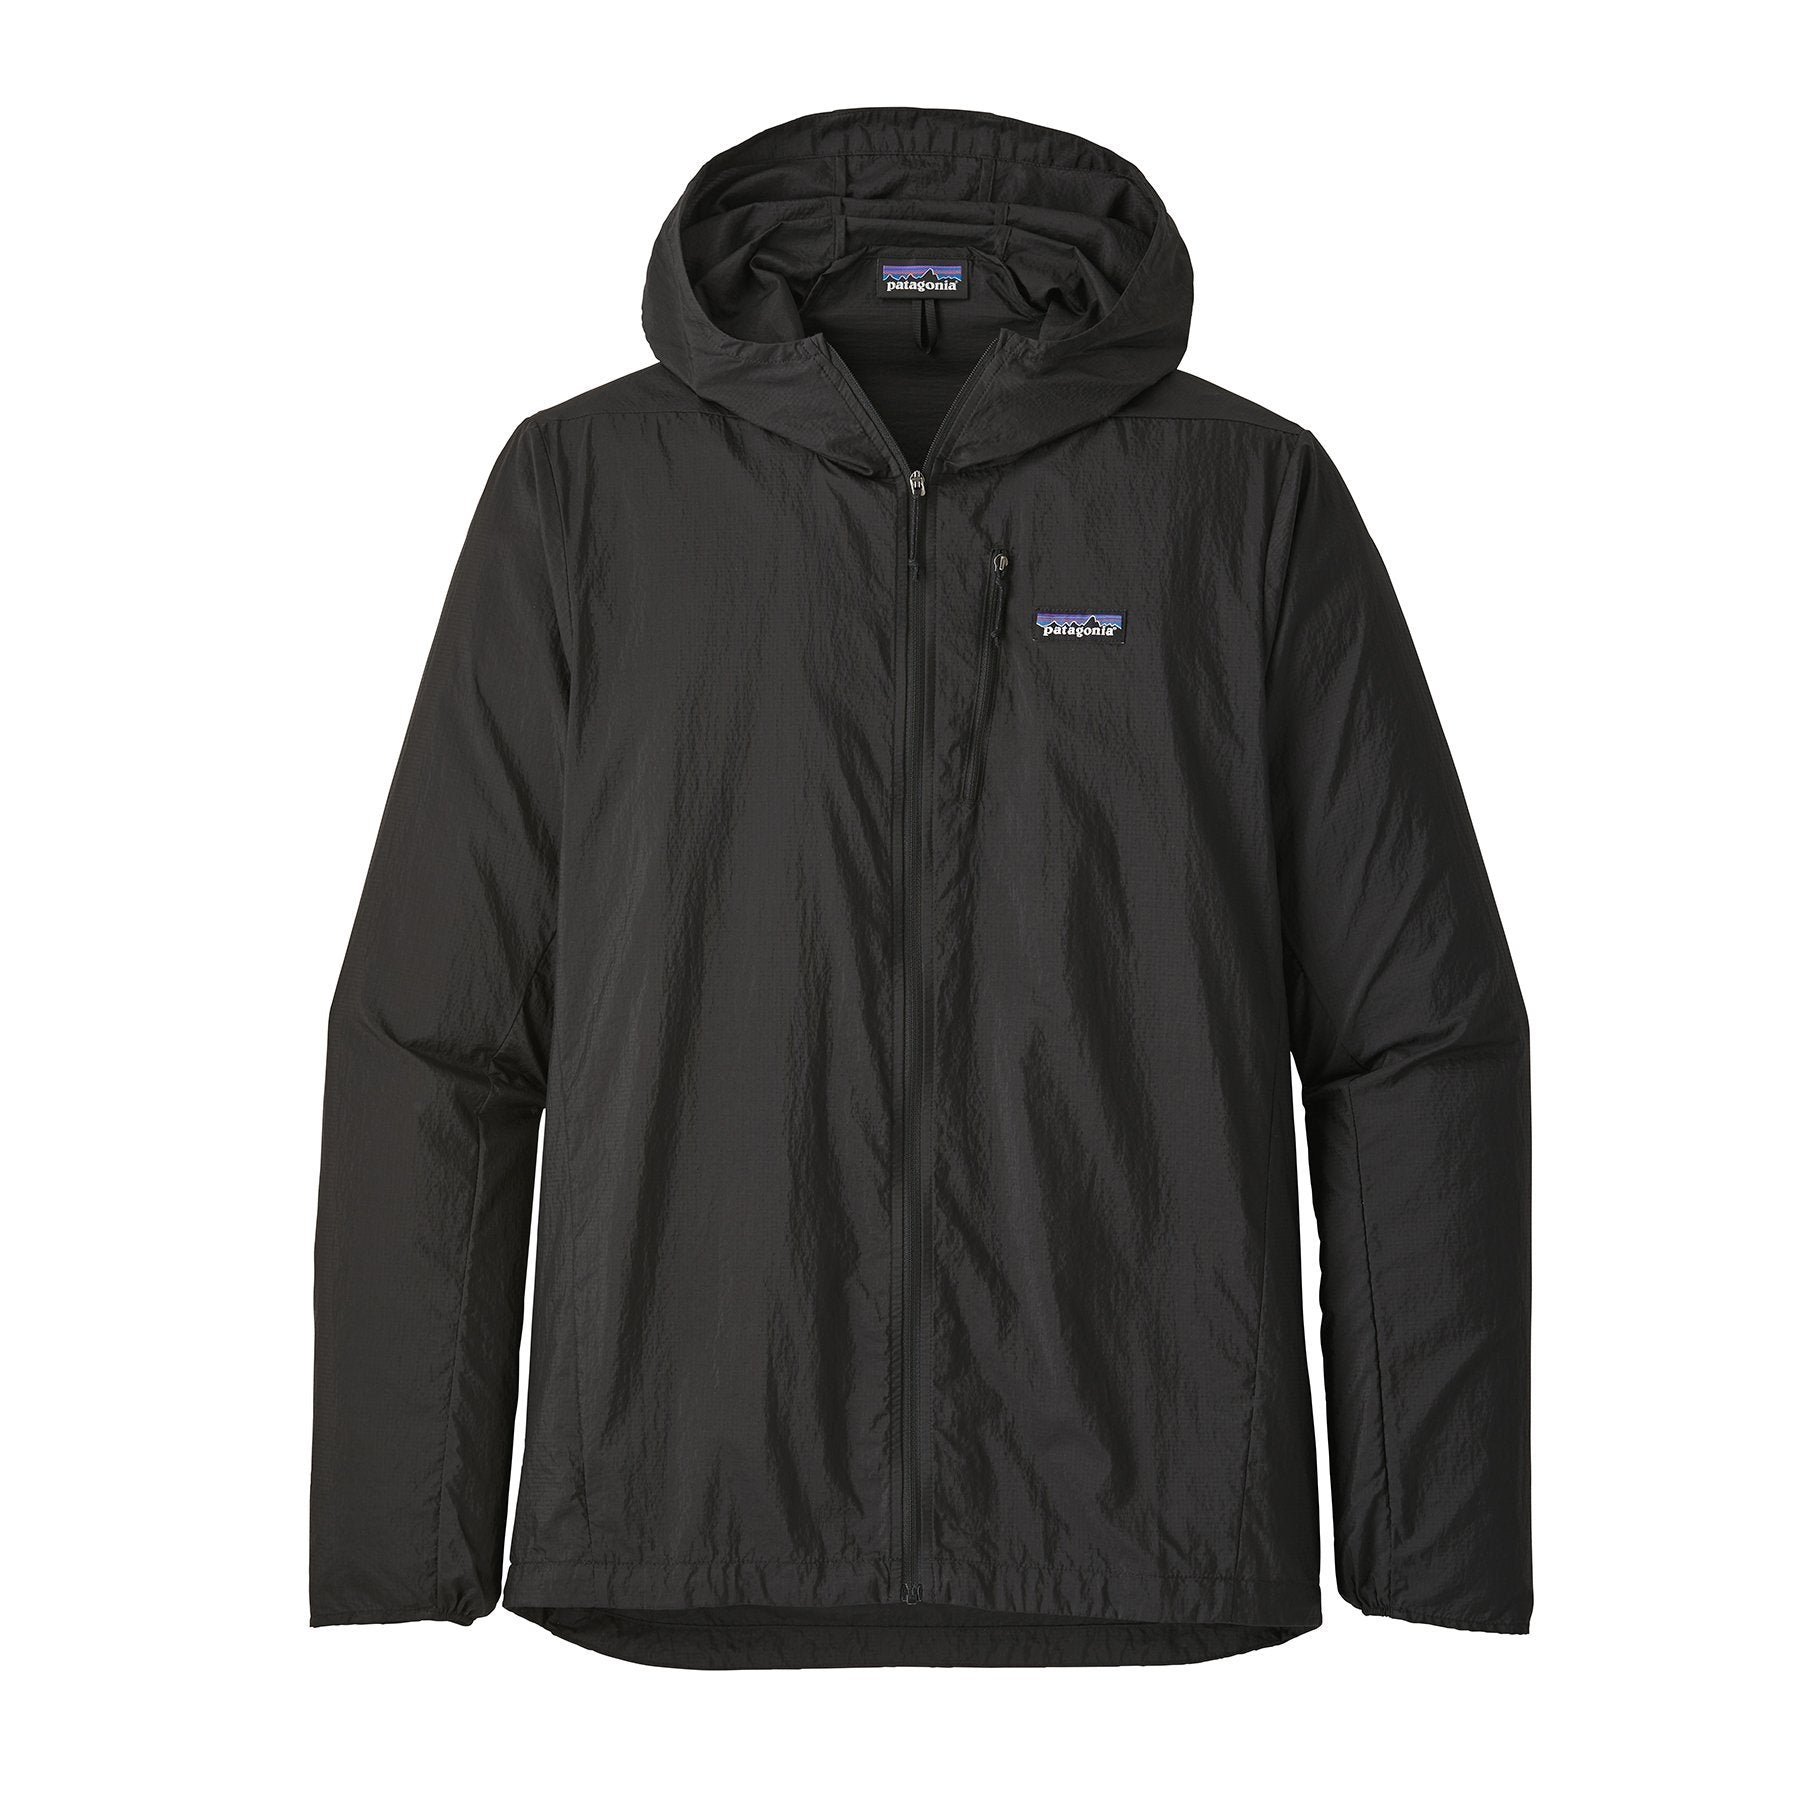 Patagonia Houdini Jacket Product Photo #1